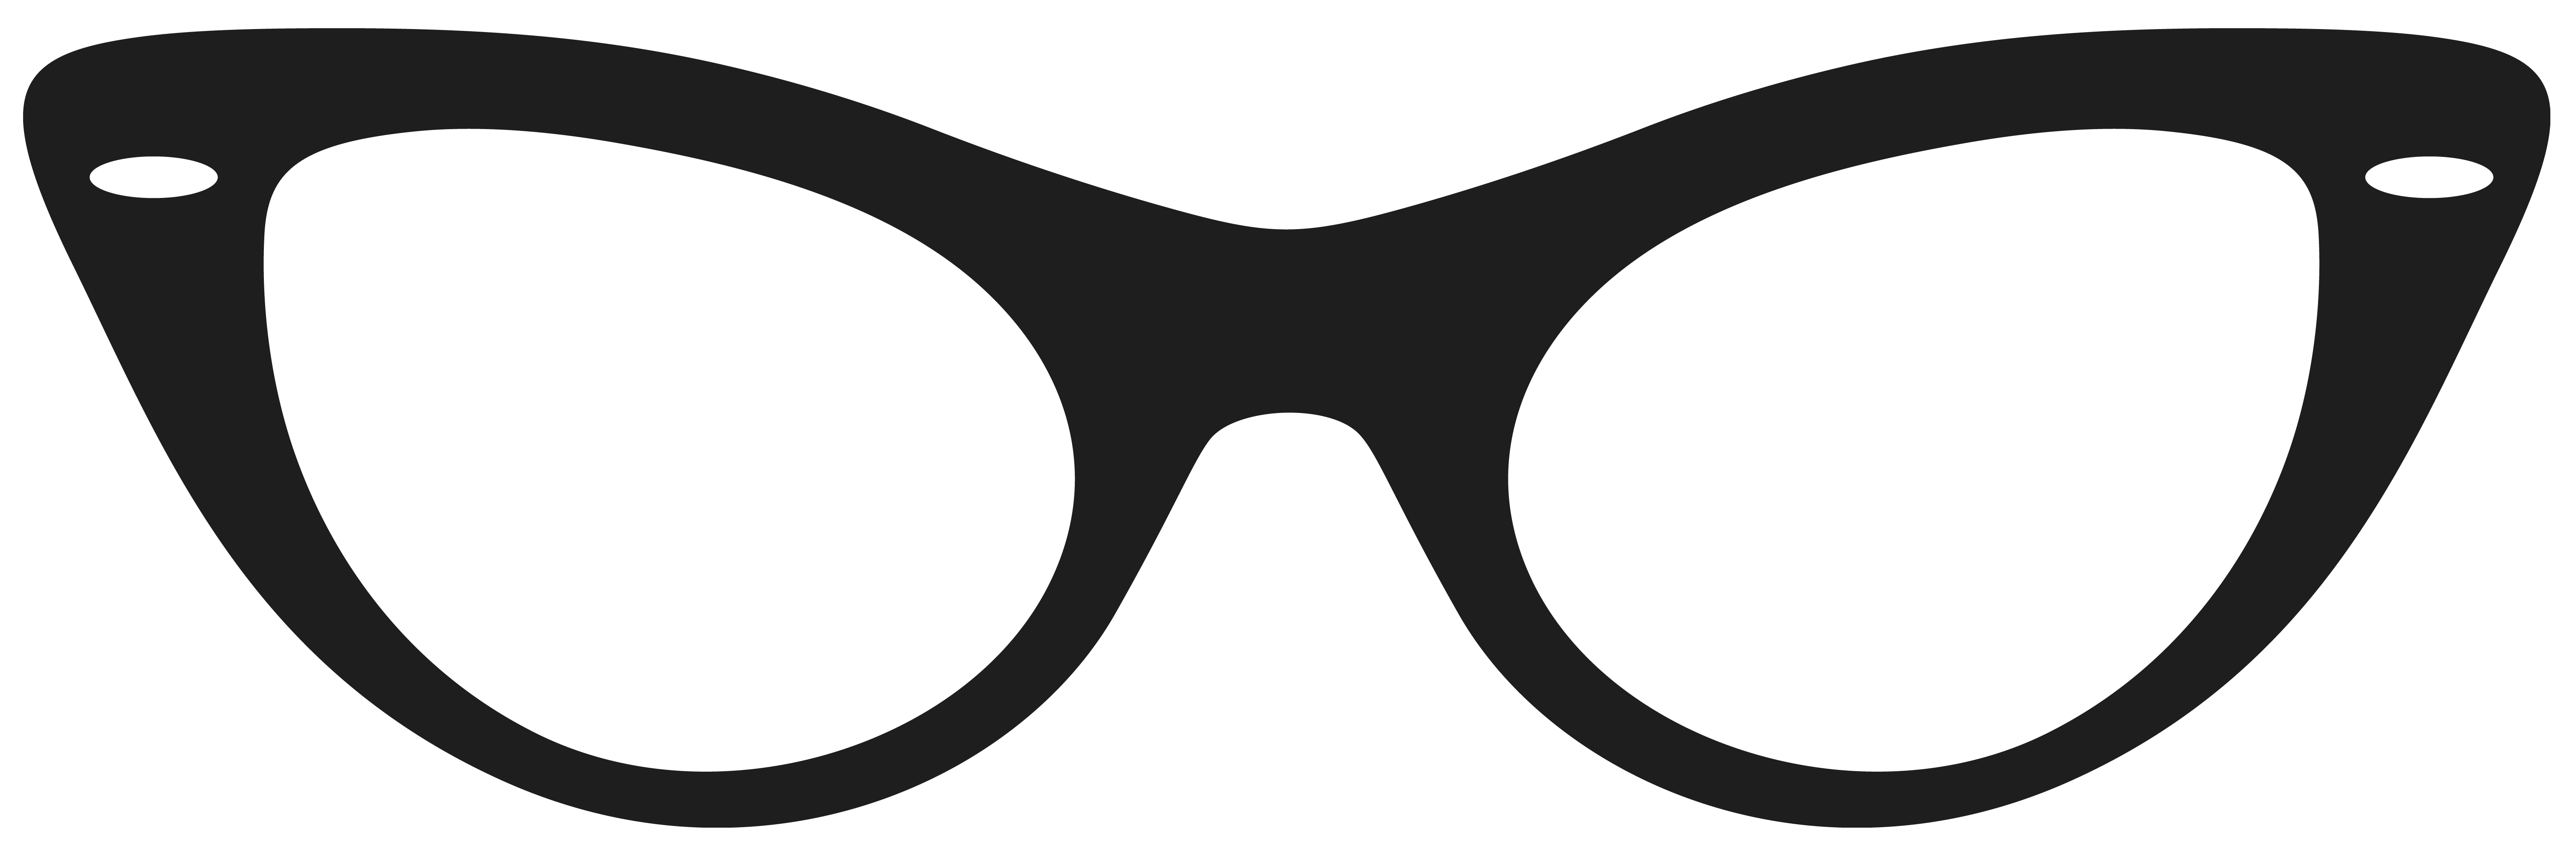 Spectacles clipart Glasses Movember Picture Clipart Clipart